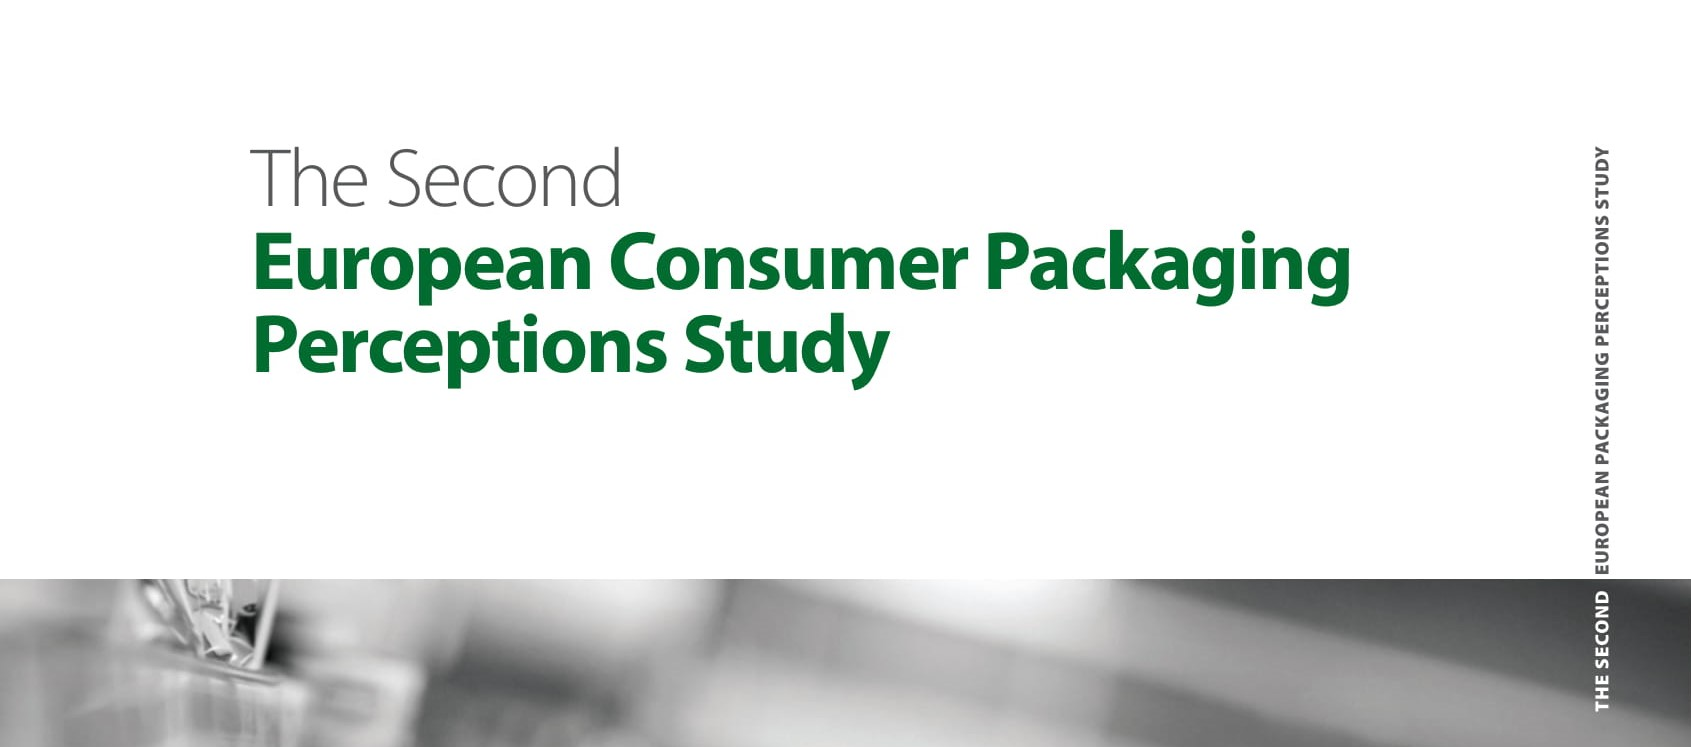 Sustainability still a key issue for Consumers